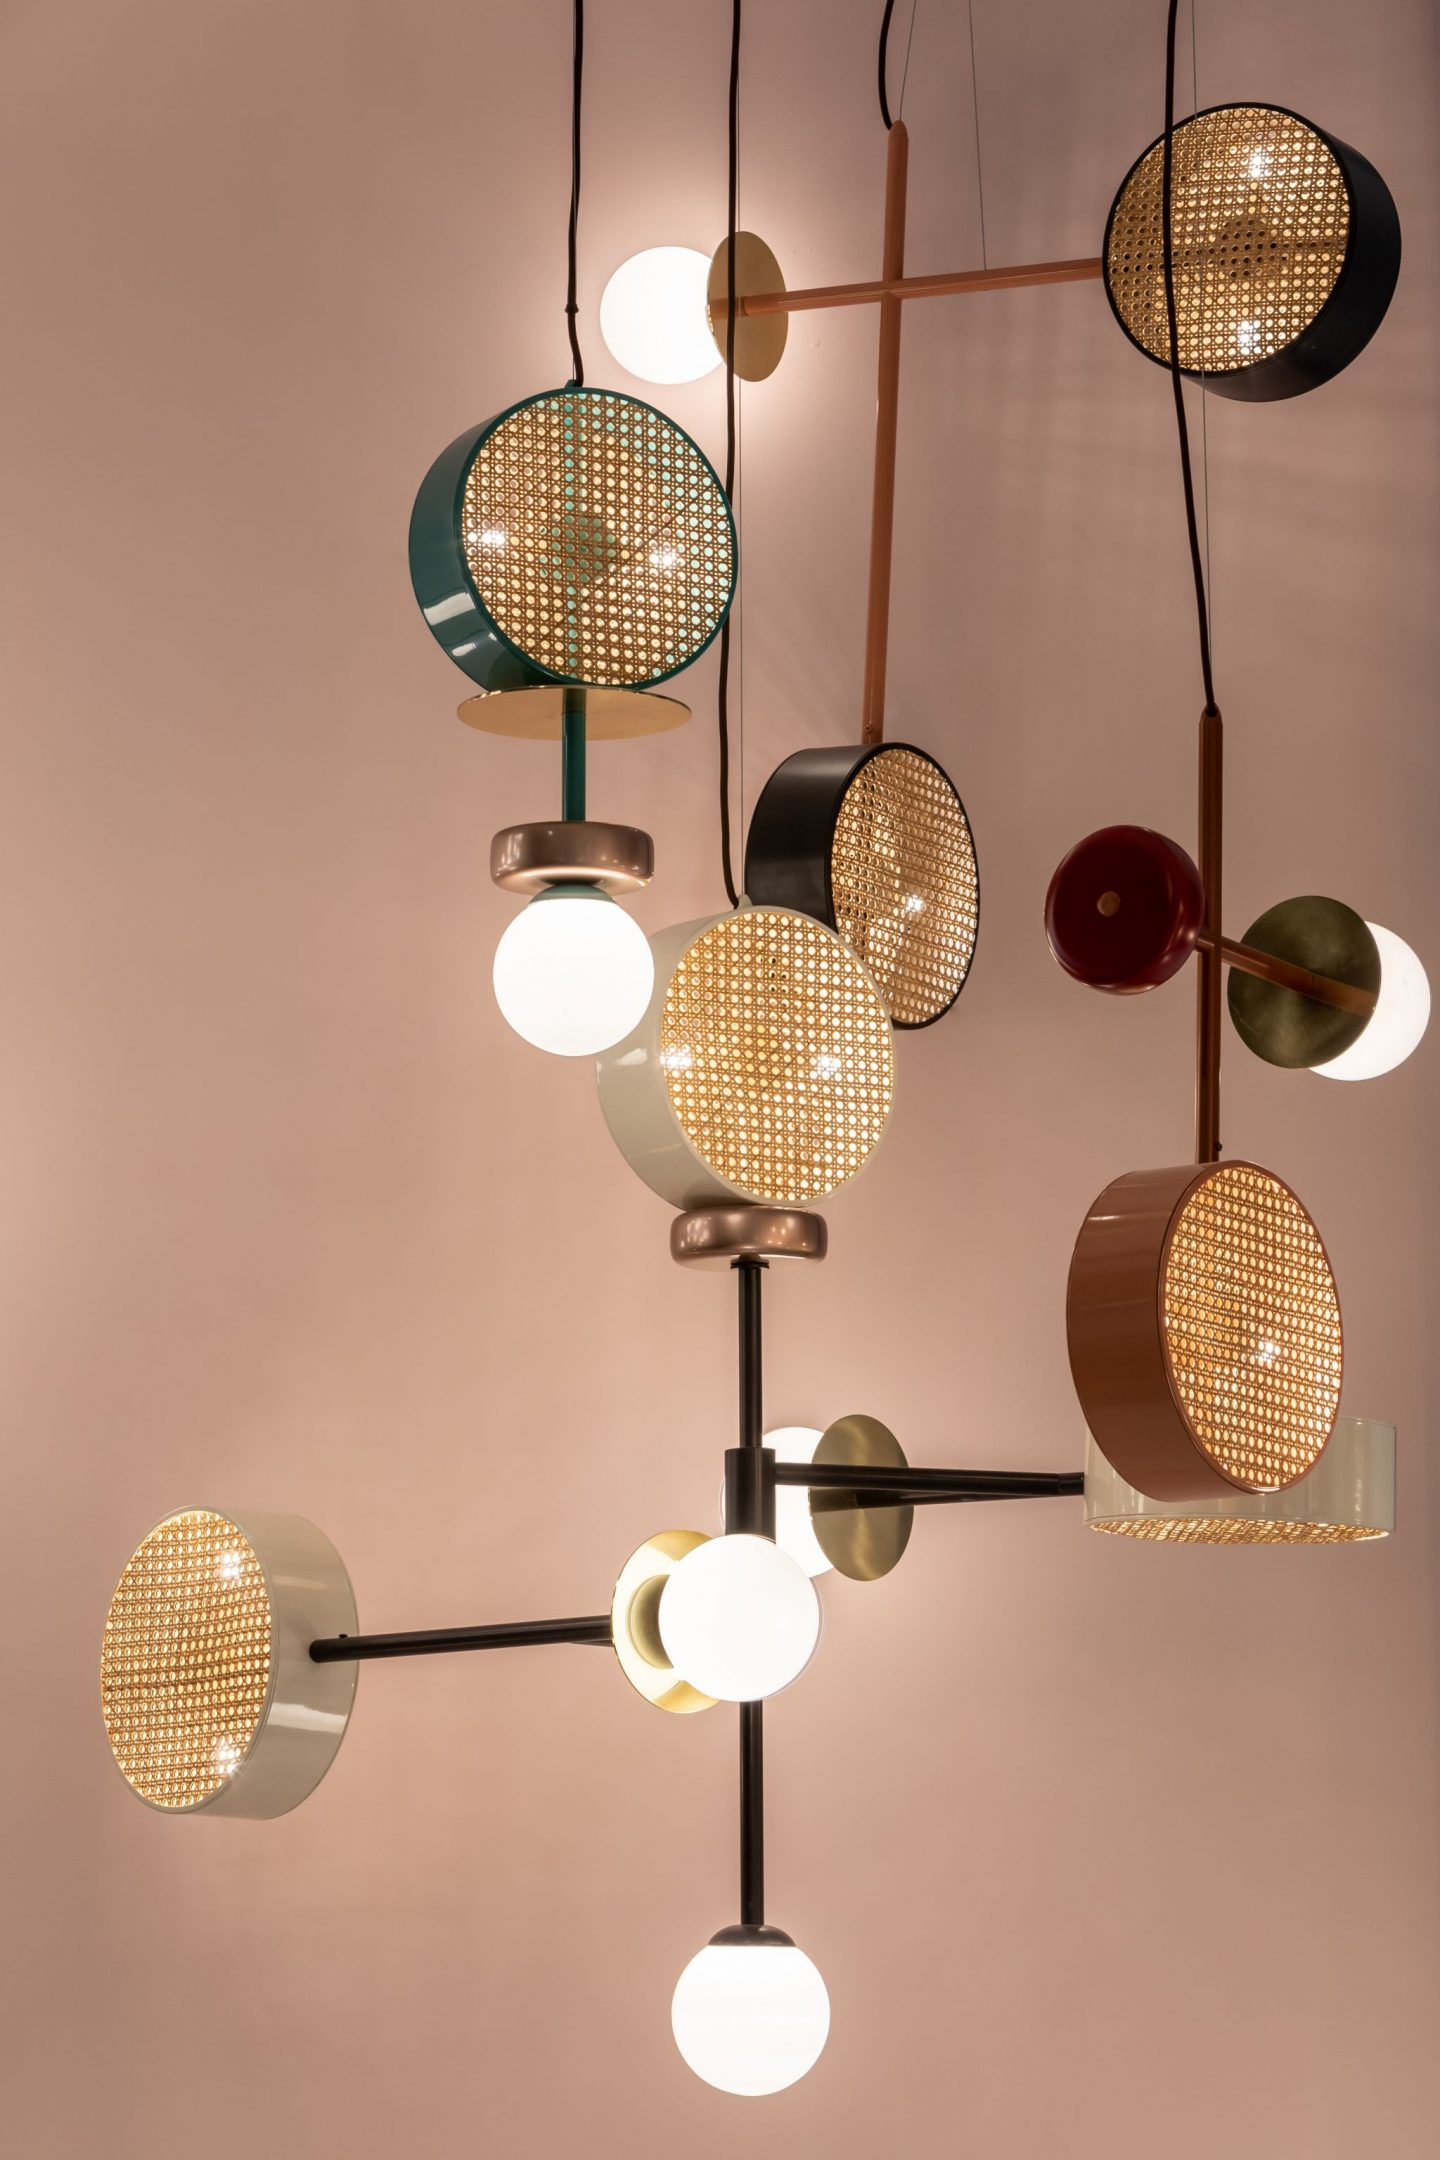 colour and form from Maison & Objet, Utu Soulful, rattan trend, memphis trend, Hello Peagreen